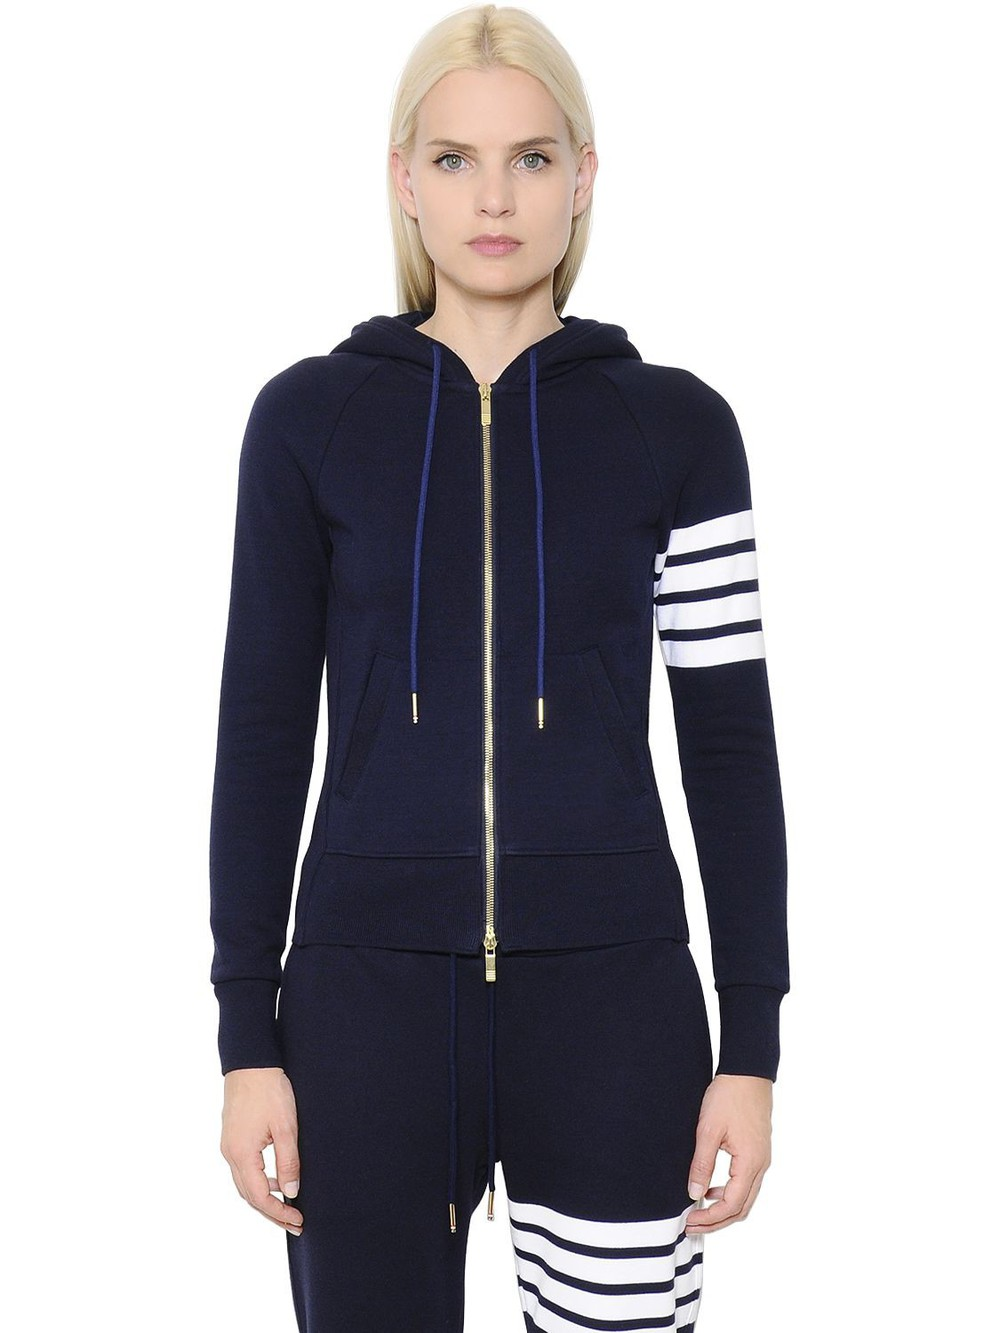 THOM BROWNE Intarsia Cotton Jersey Zip-up Sweatshirt in navy